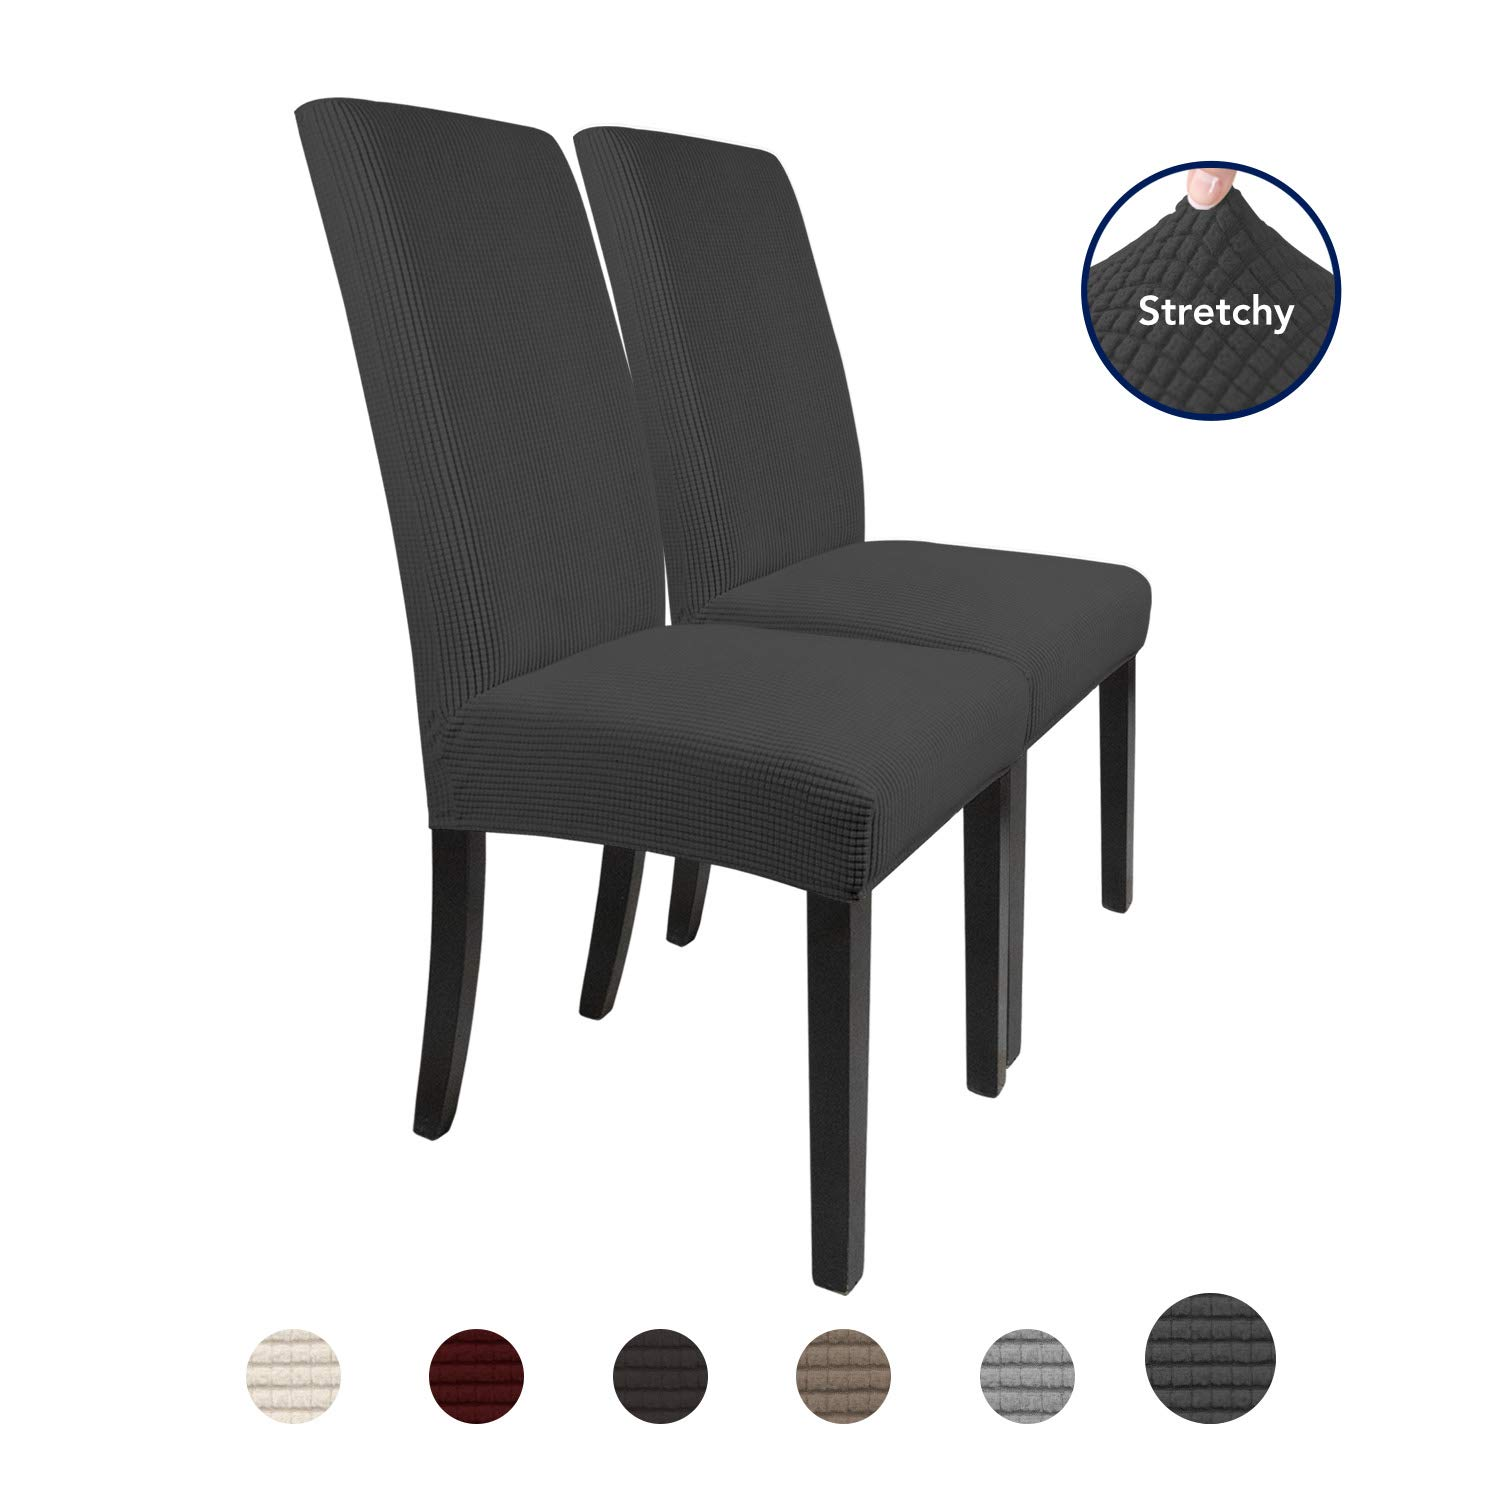 PureFit 2 Pieces Stretch Dinner Chair Covers – Spandex Jacquard Soft Fitted Dinning Chair Slipcover, Washable Furniture Protector with Anti-Skid Elastic Bottom for Dining Room